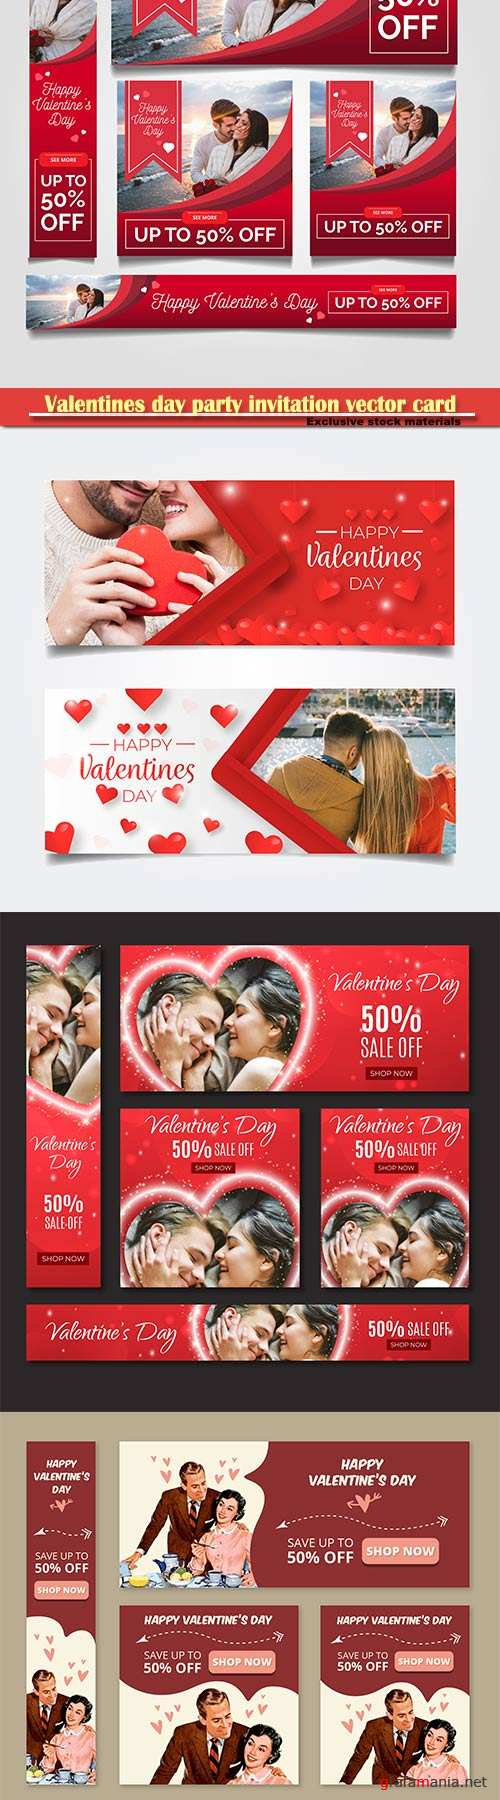 Valentines day party invitation vector card # 56